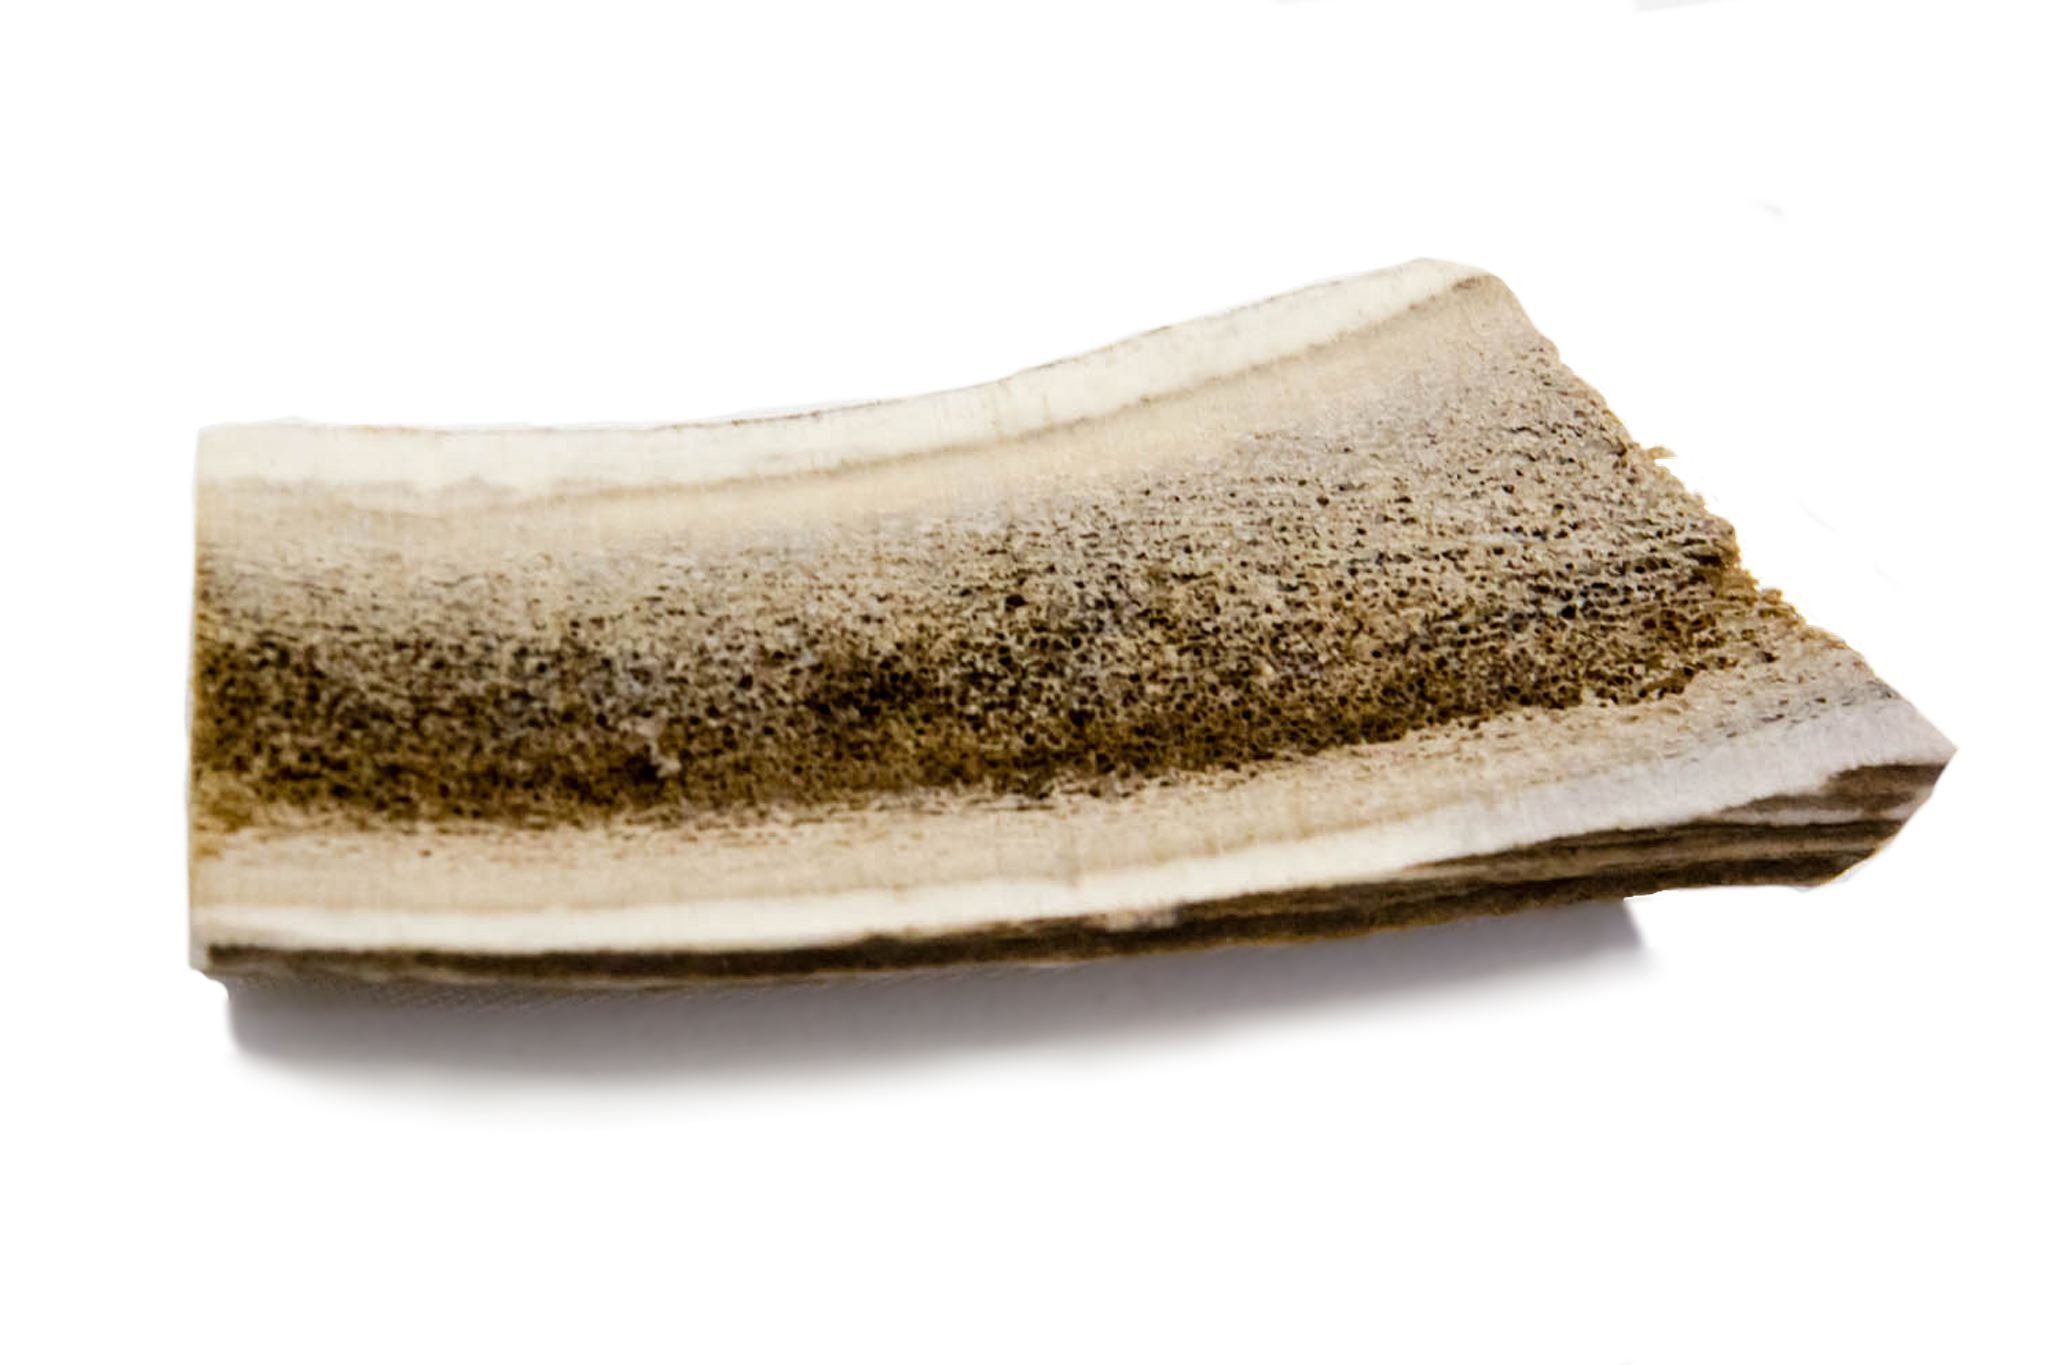 Deer And Elk Antlers For Dogs, Antler Dog Chew, 5-6 Inches All Natural Dog Chew Toy (Medium Split)